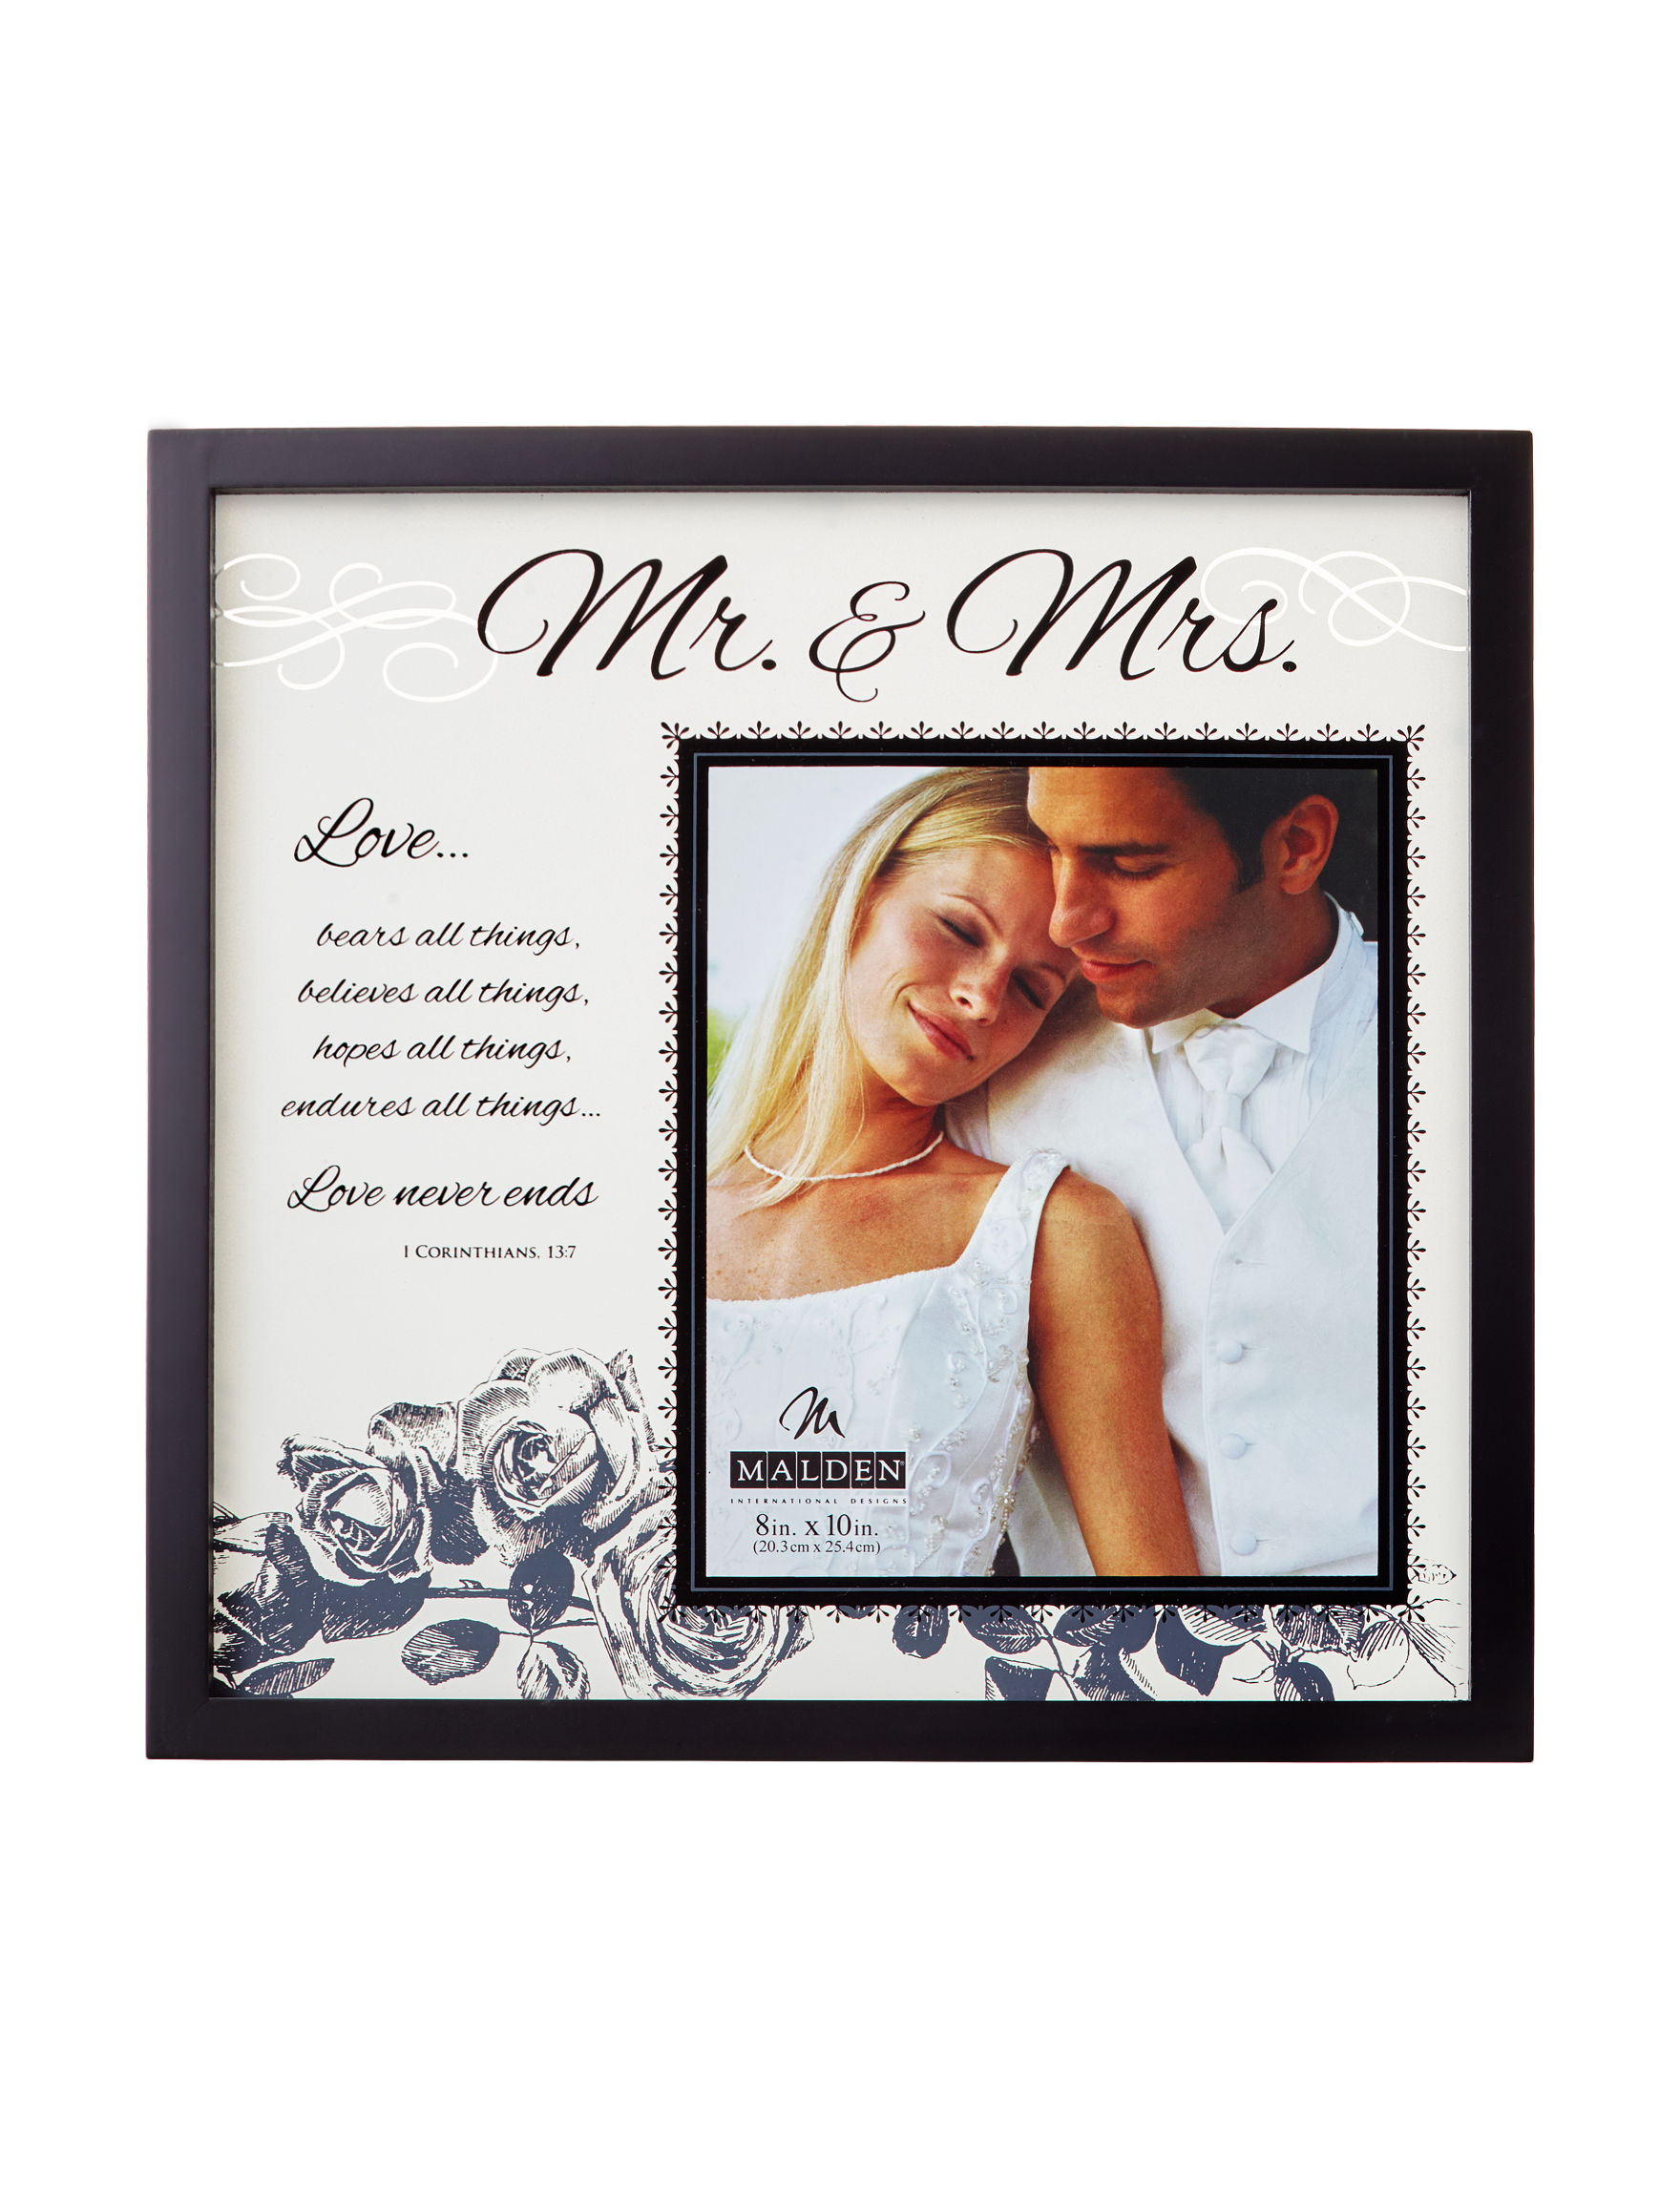 Malden Black Wall Art Frames & Shadow Boxes Home Accents